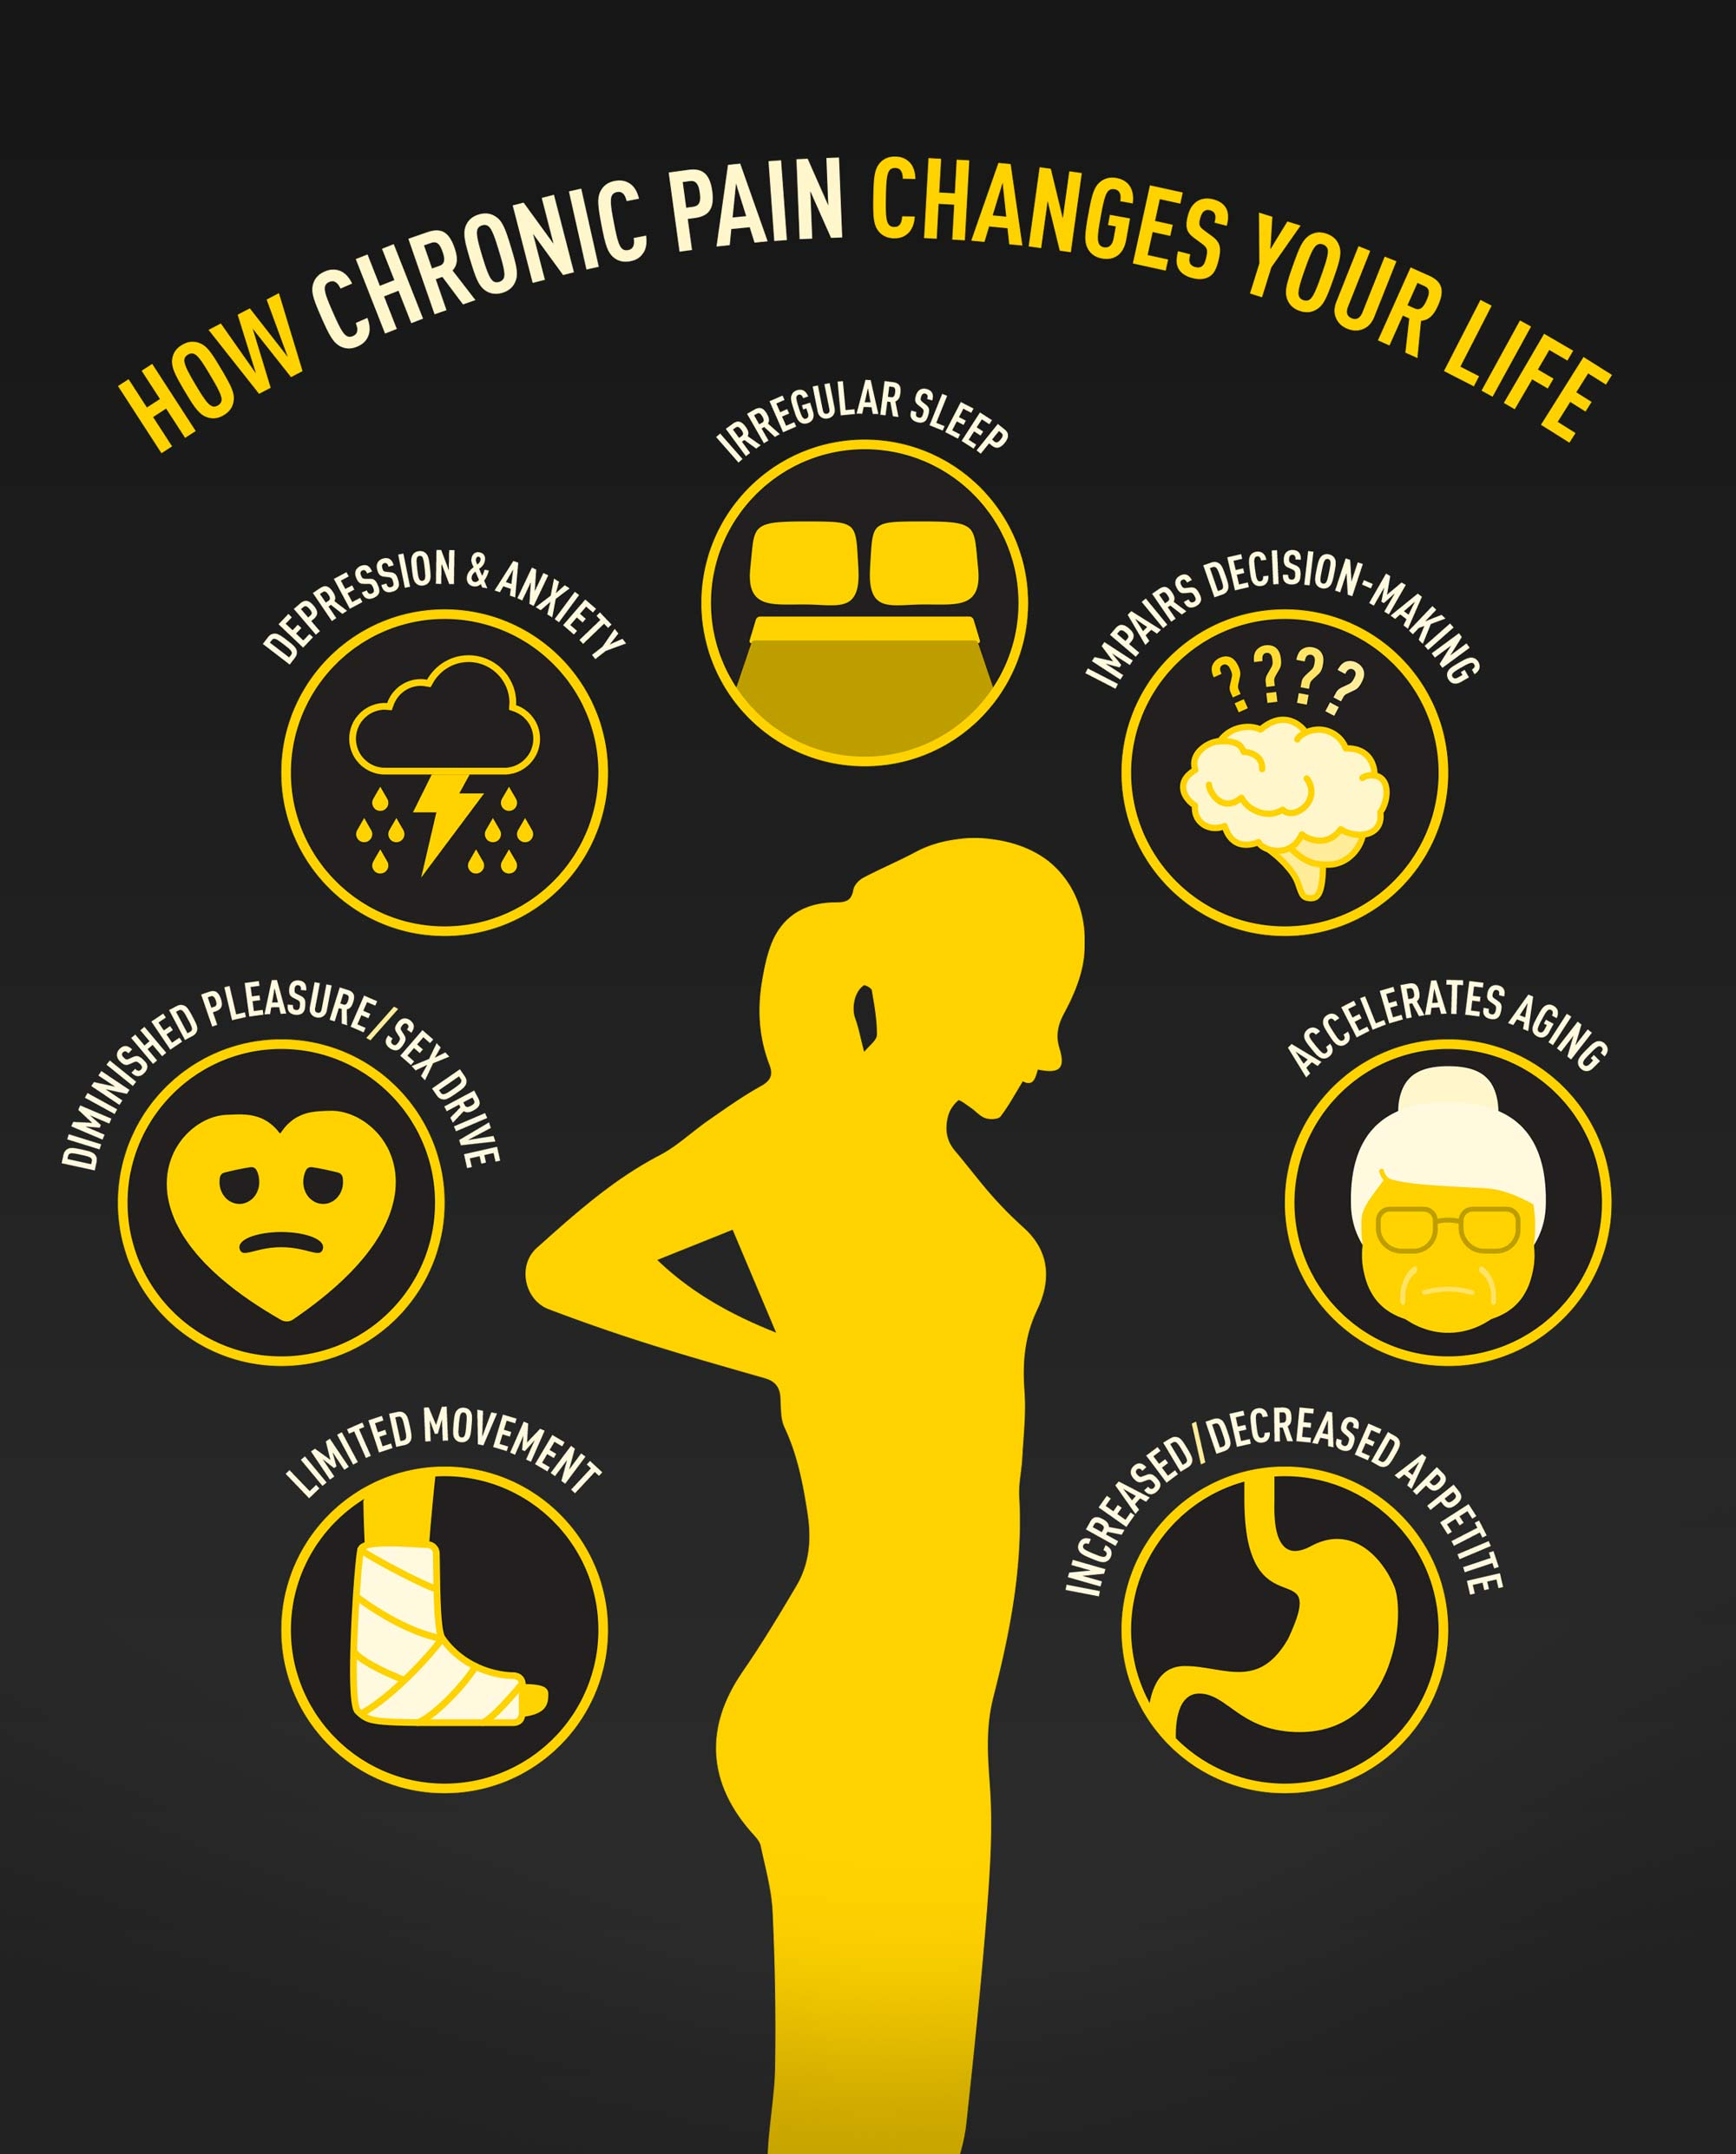 How chronic pain changes your life: limited movement, diminished pleasure/sex drive, depression & anxiety, irregular sleep, impairs decision-making, accelerates aging, increased/decreased appetite